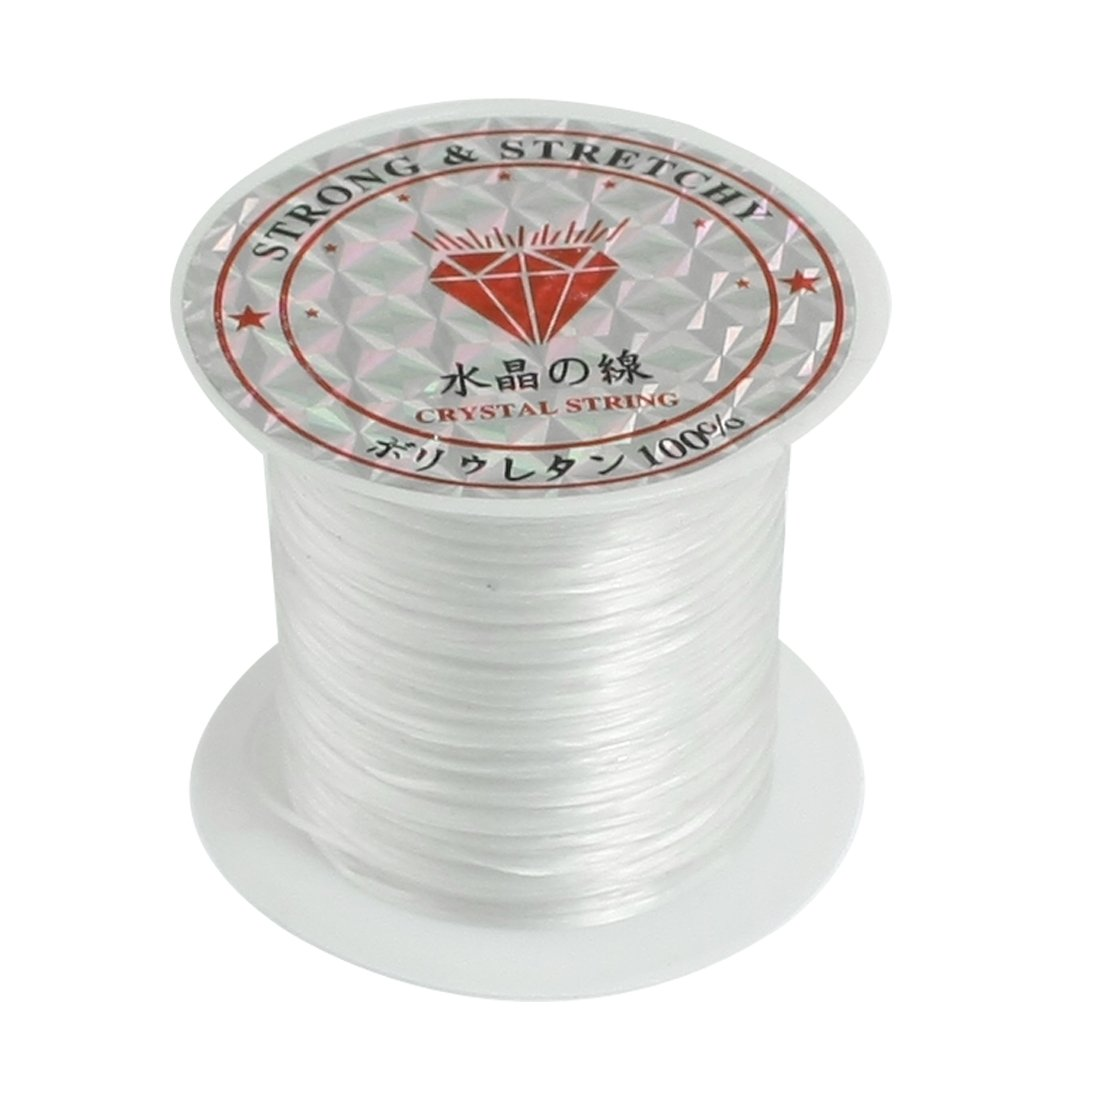 uxcell Elastic Stretchy Crystal Line Jewelry Beading Thread Spool 9M White a12052100ux0098